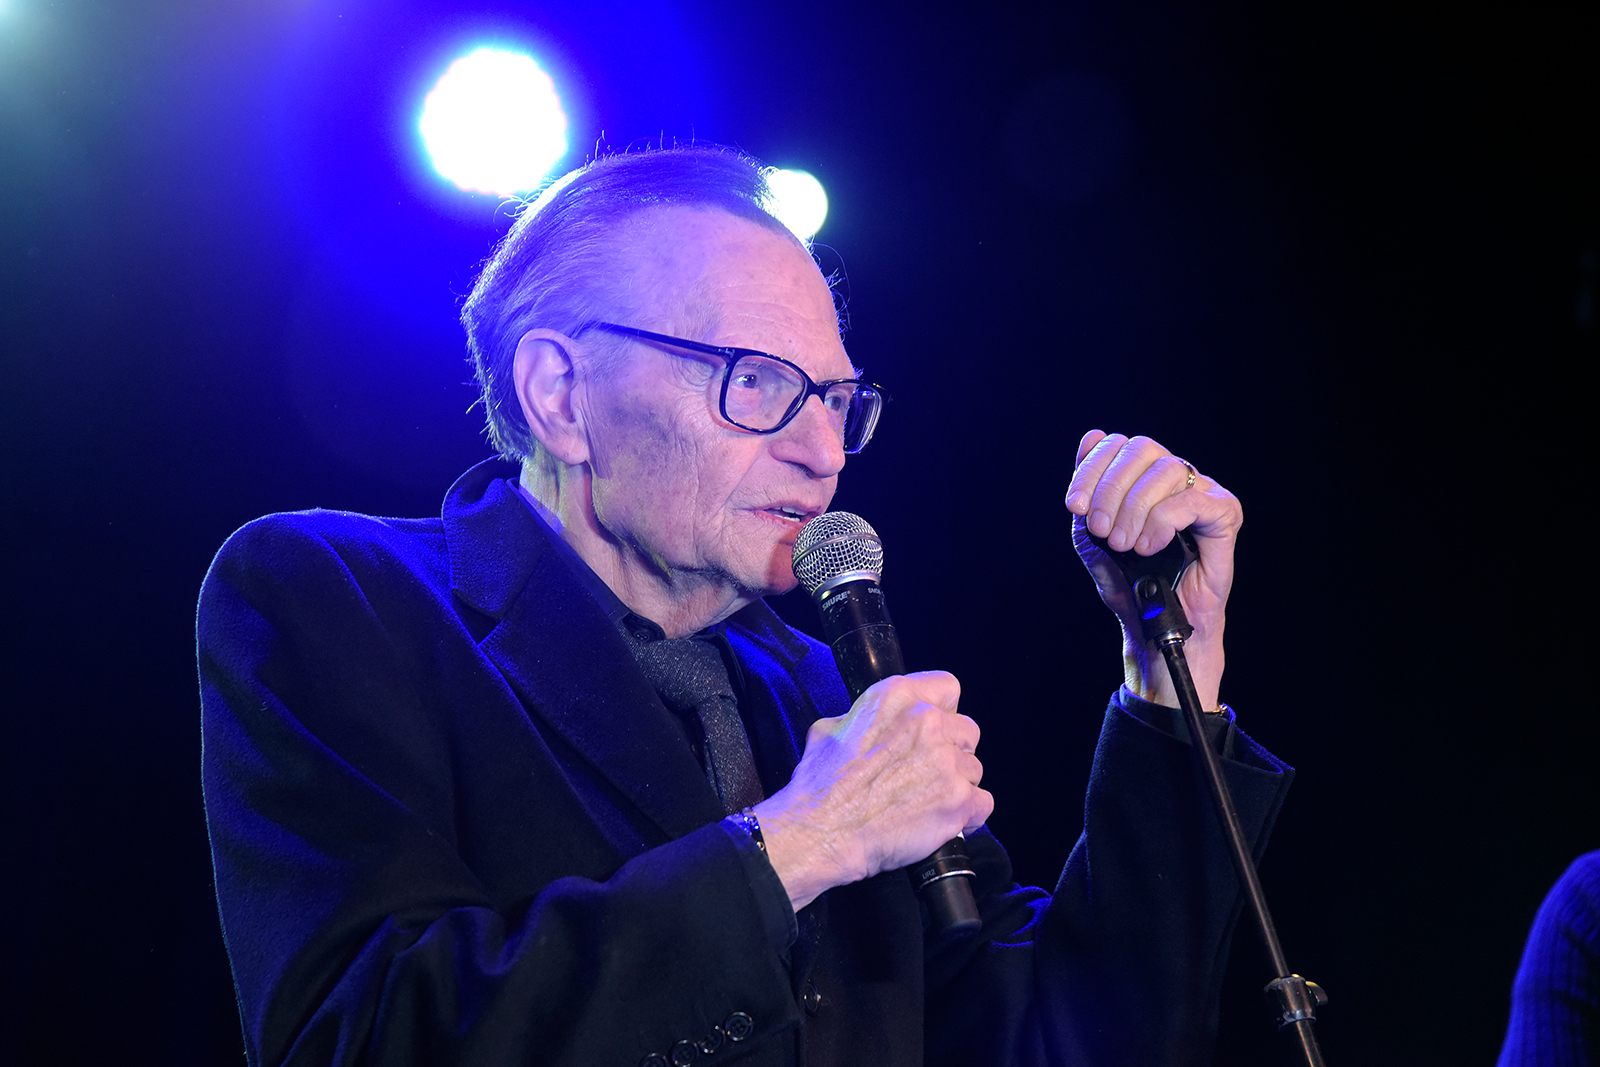 Larry King speaks during the 5th annual The Soirée gala at The Roxy Theatre in West Hollywood, California, on February 09, 2019.